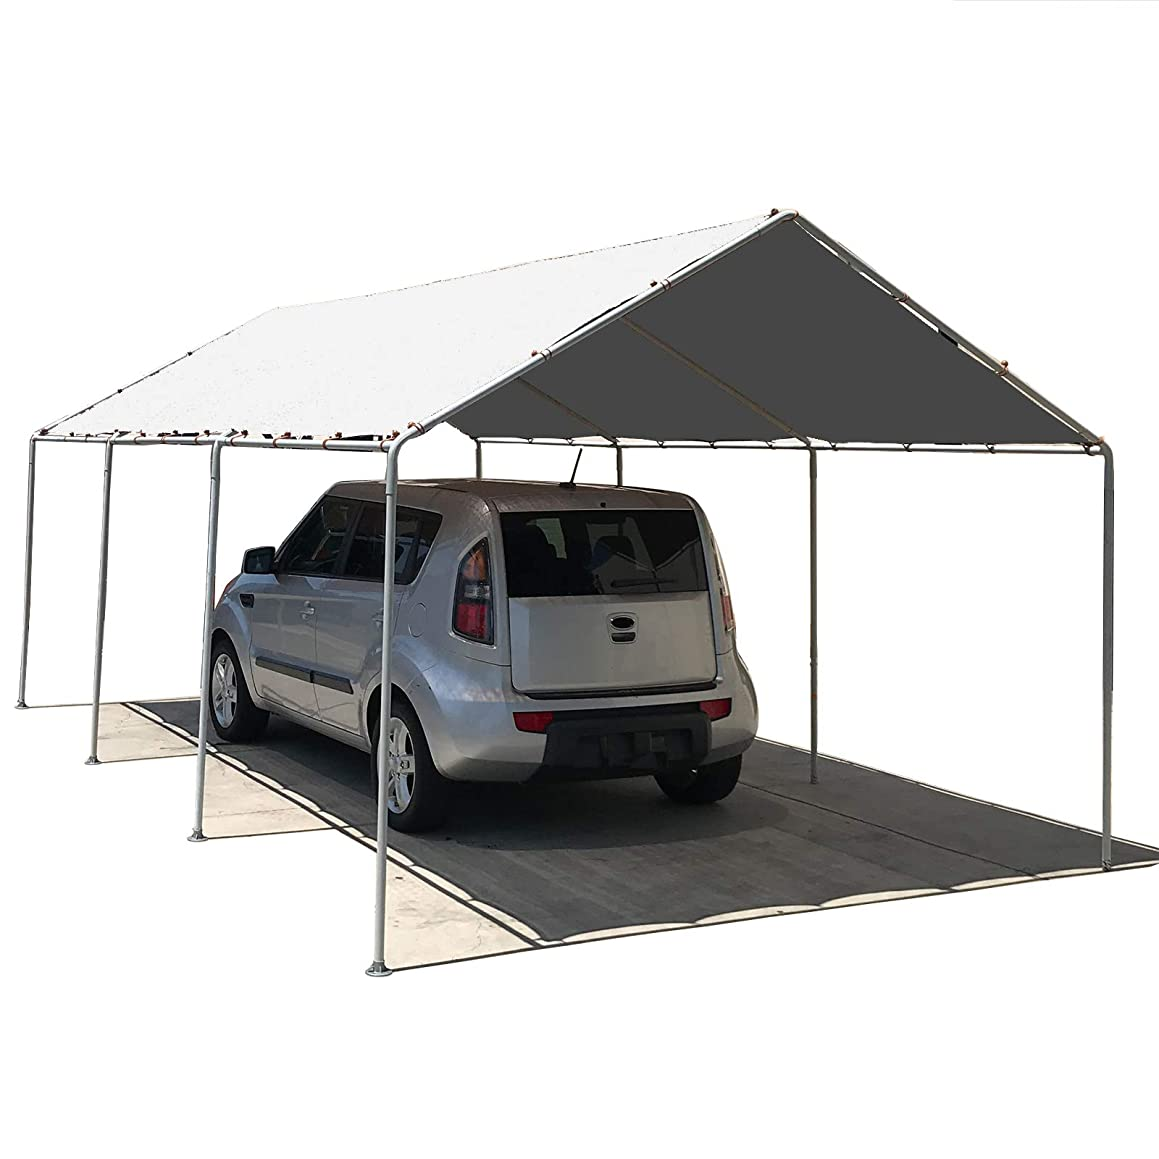 Alion Home Waterproof Poly Tarp Carport Canopy Replacement Garage Shelter Cover w Ball Bungees for Low & Medium Peak(Frame Not Included) (12' x 16', White)